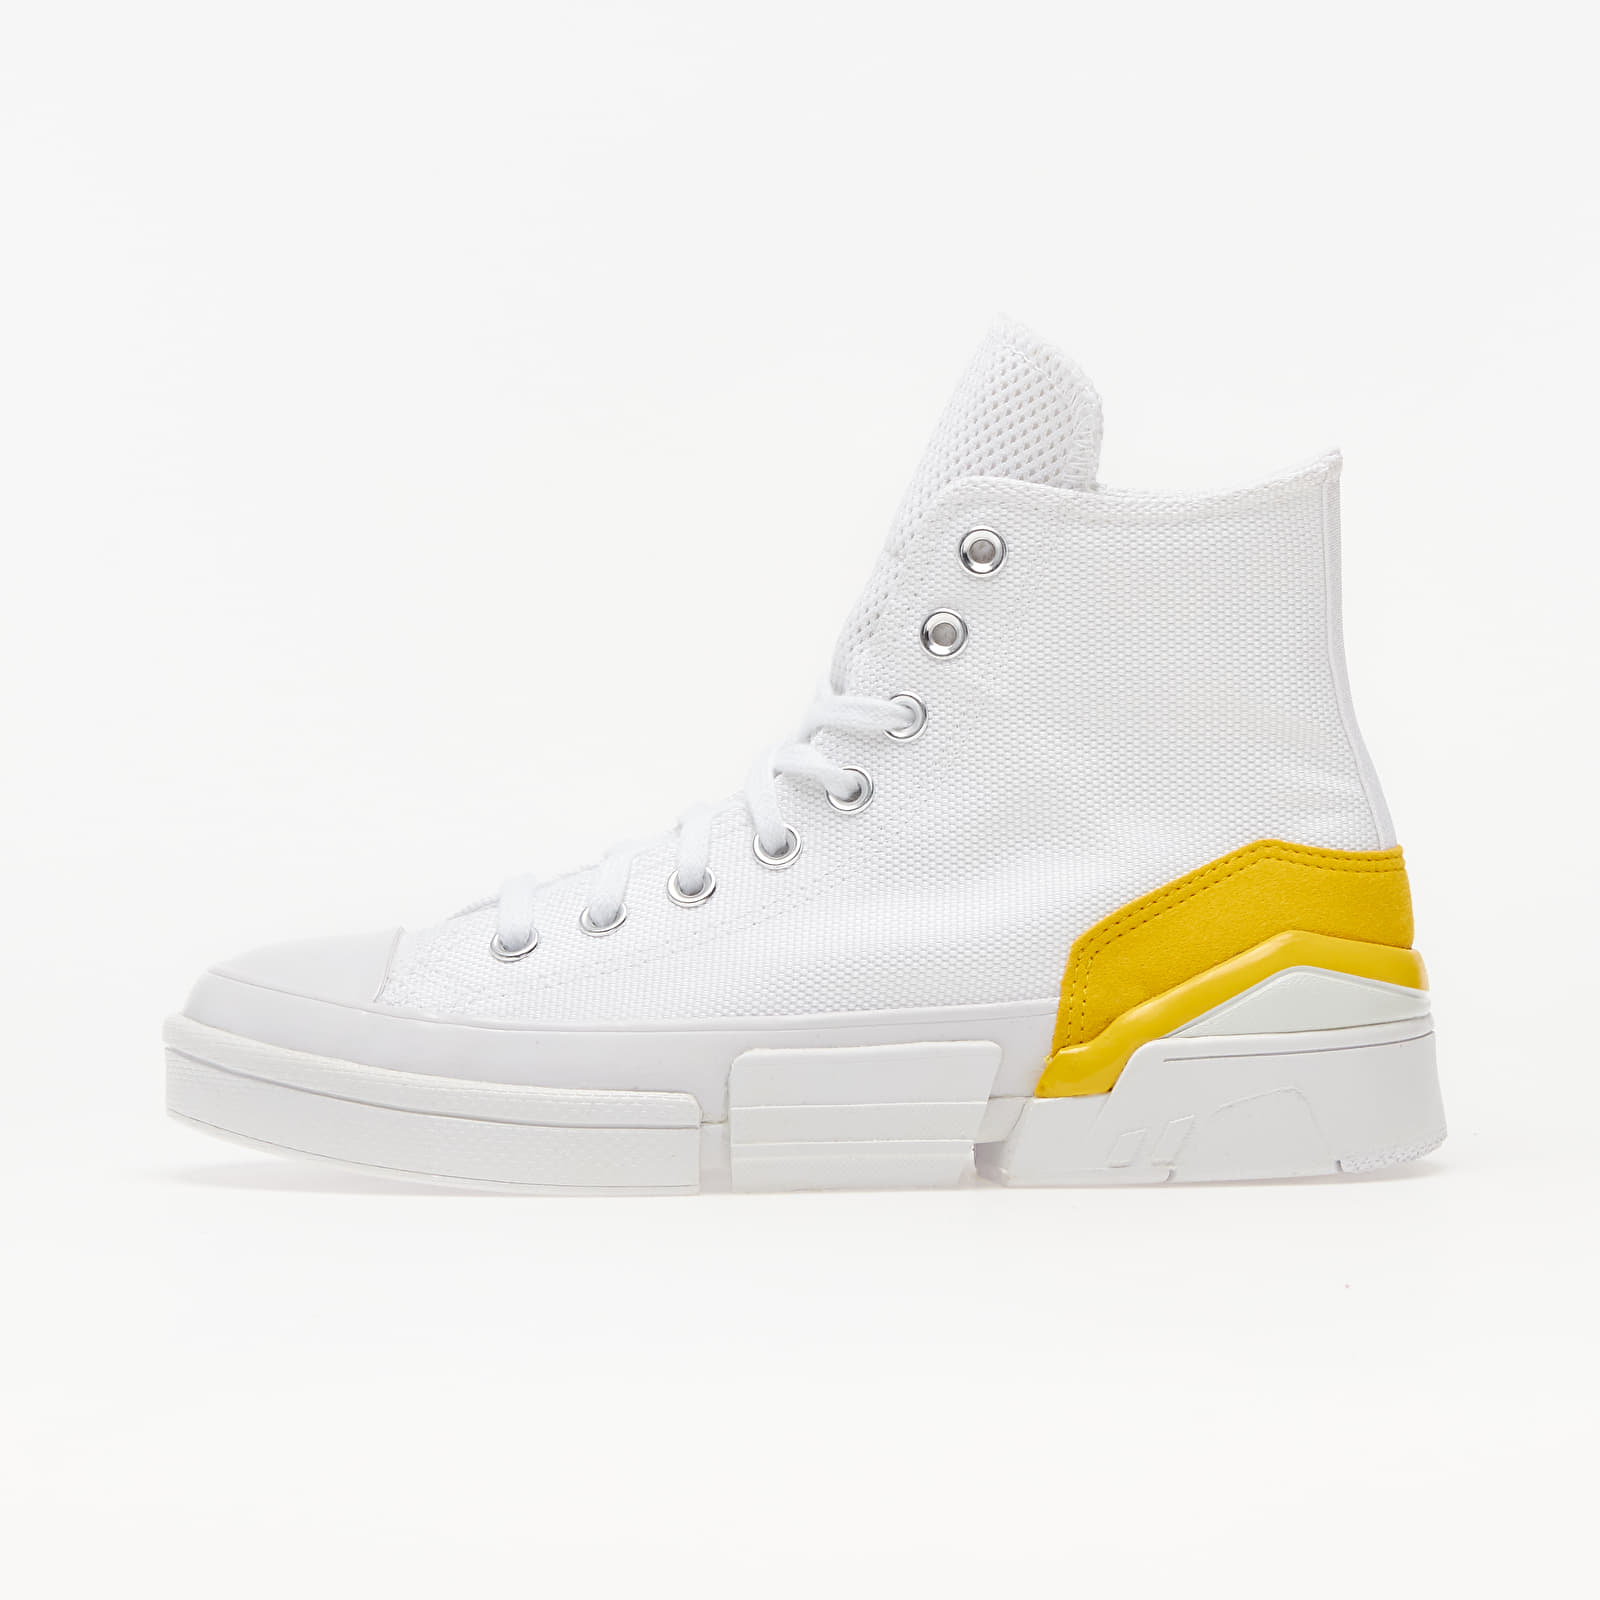 Women's shoes Converse CPX70 Hi White/ Speed Yellow/ Black